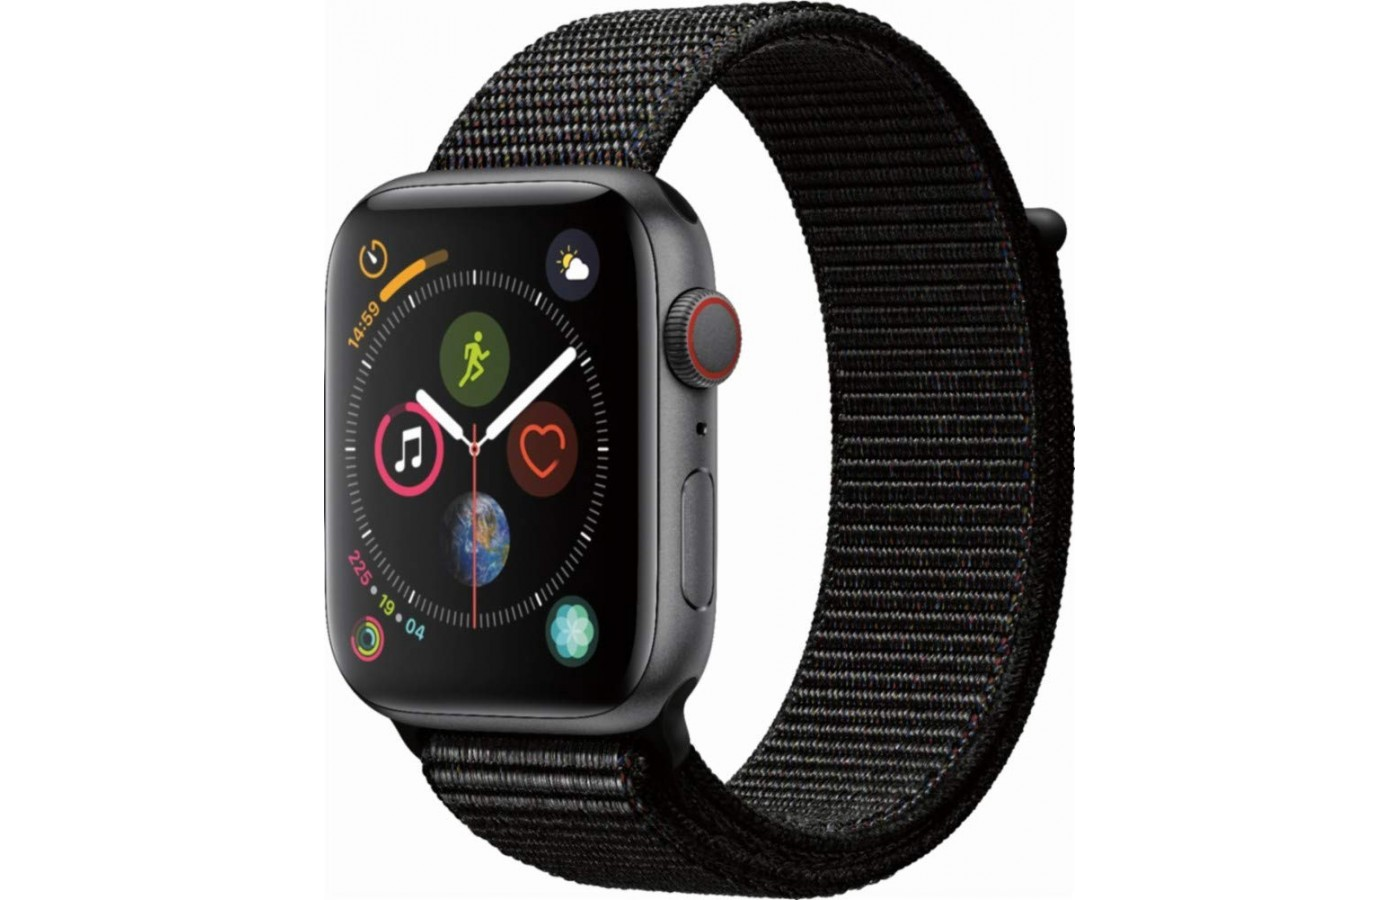 Resplandor profundizar volumen  Apple Watch Series 4 Nike+ Reviewed for Tech in 2020 | WalkJogRun